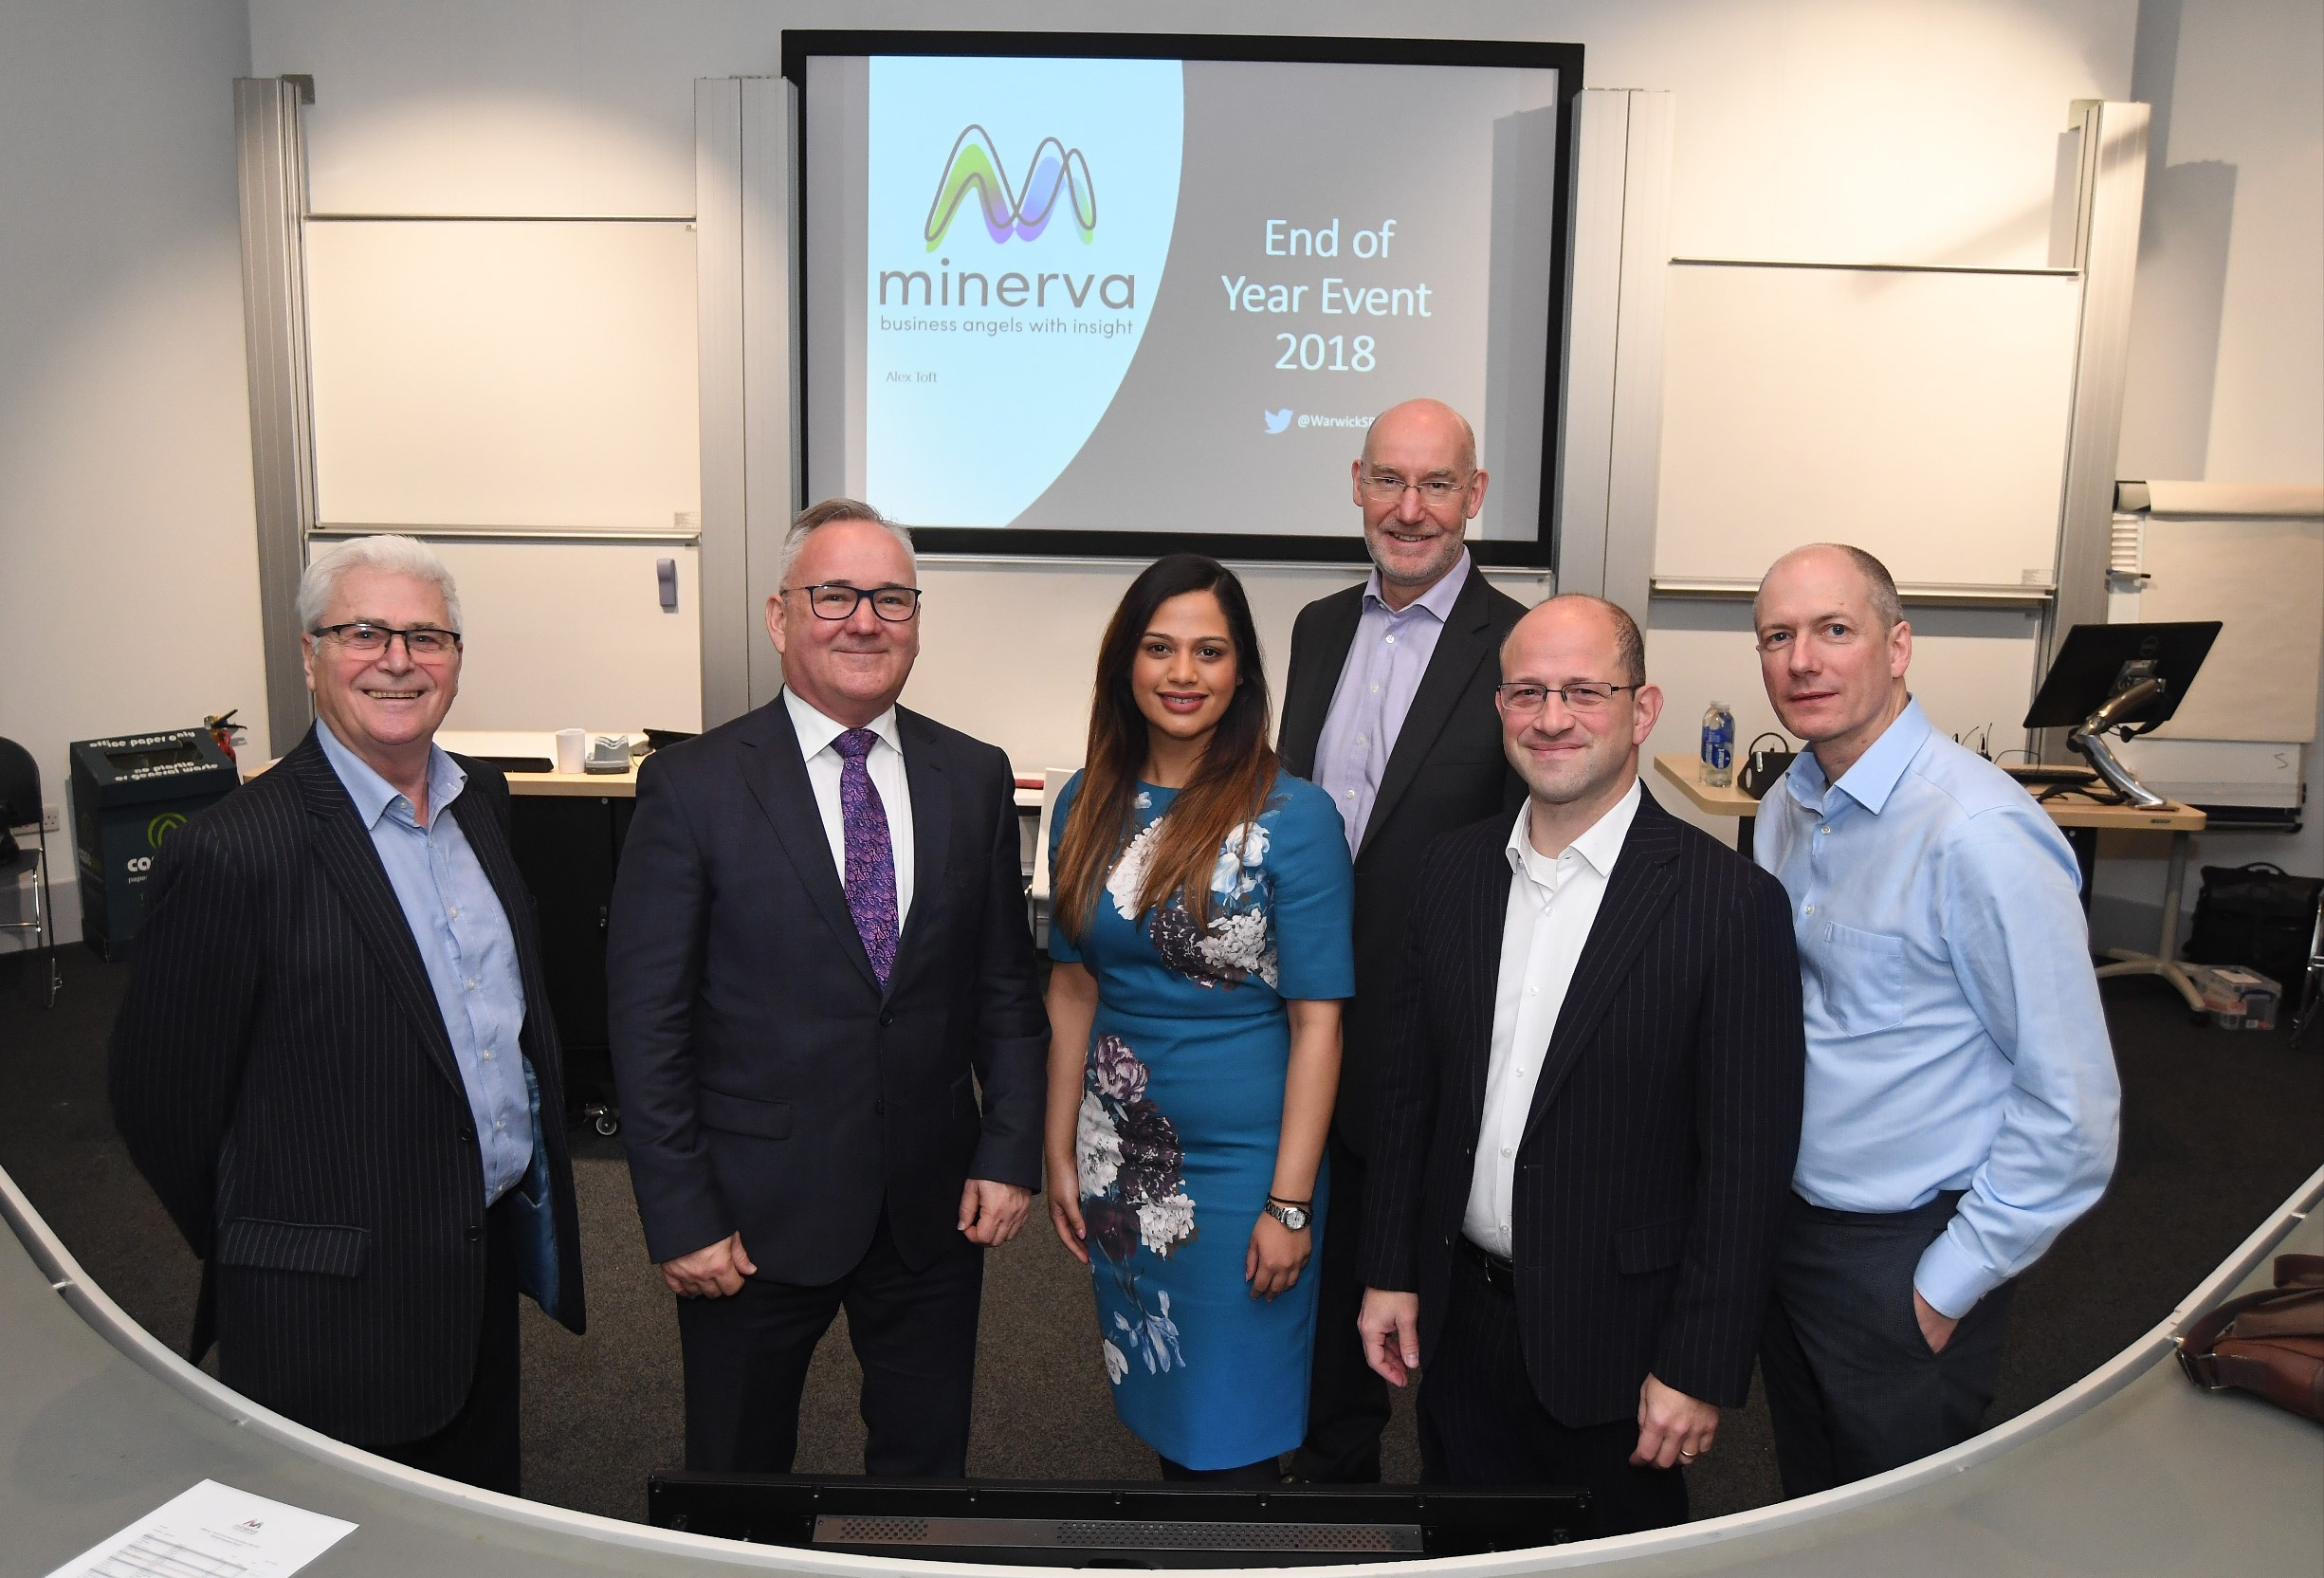 West Mids must close the gap on South East angel investment